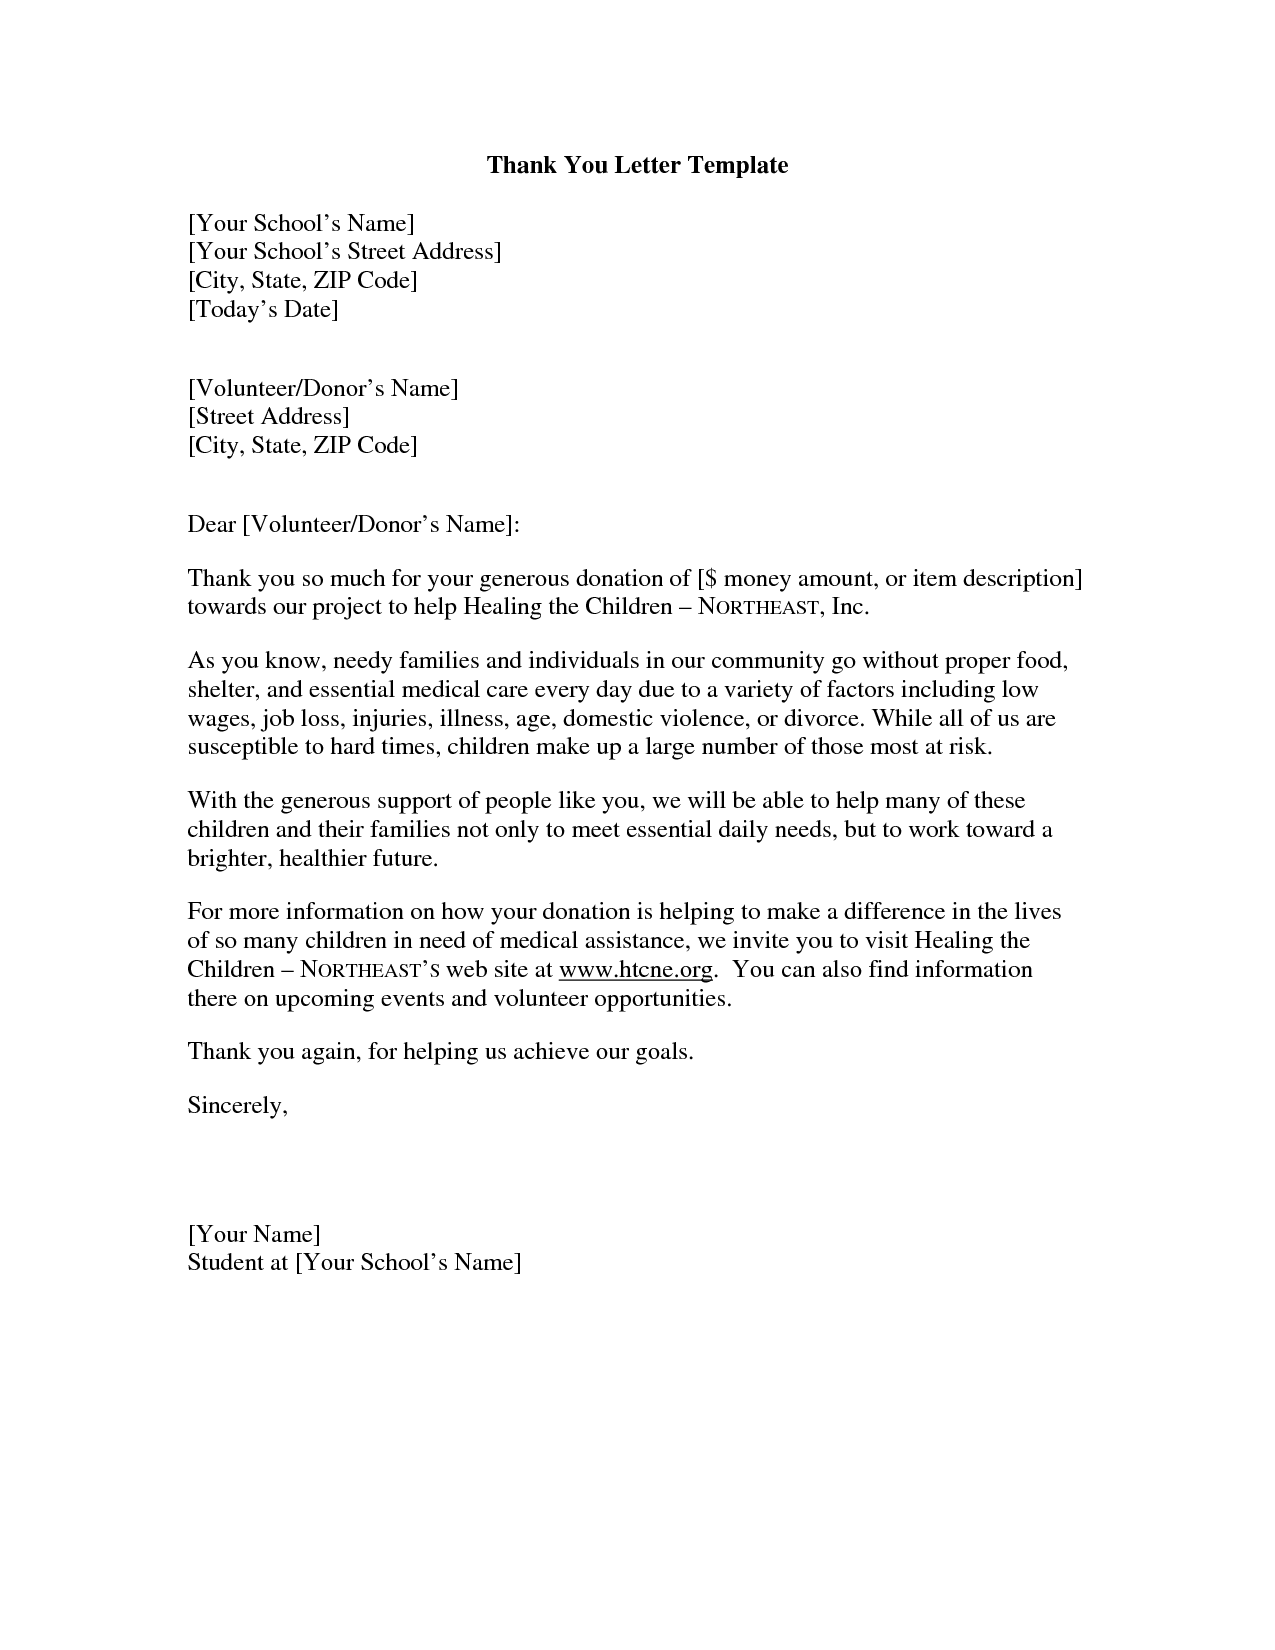 Thank You For Your Help Letter | Crna Cover Letter